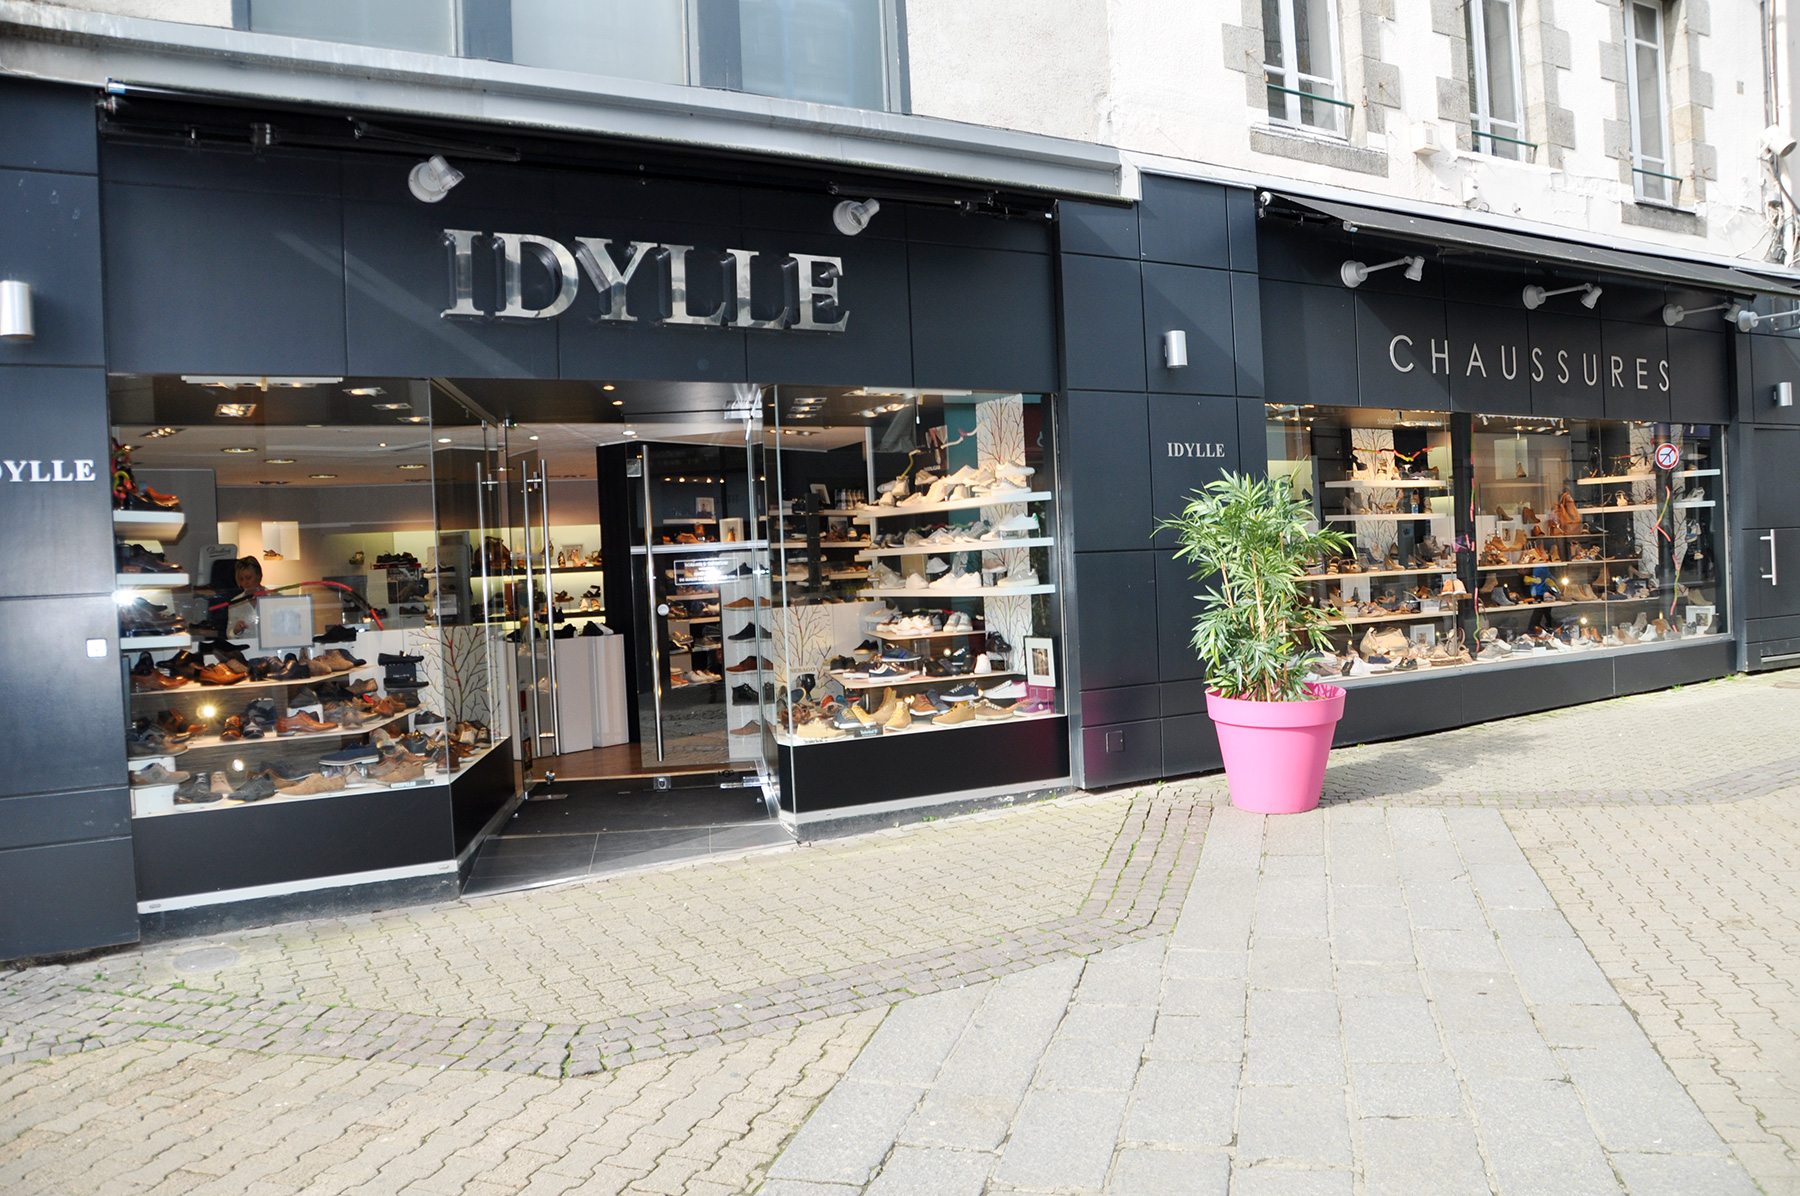 Nos boutiques Idylle Chaussures